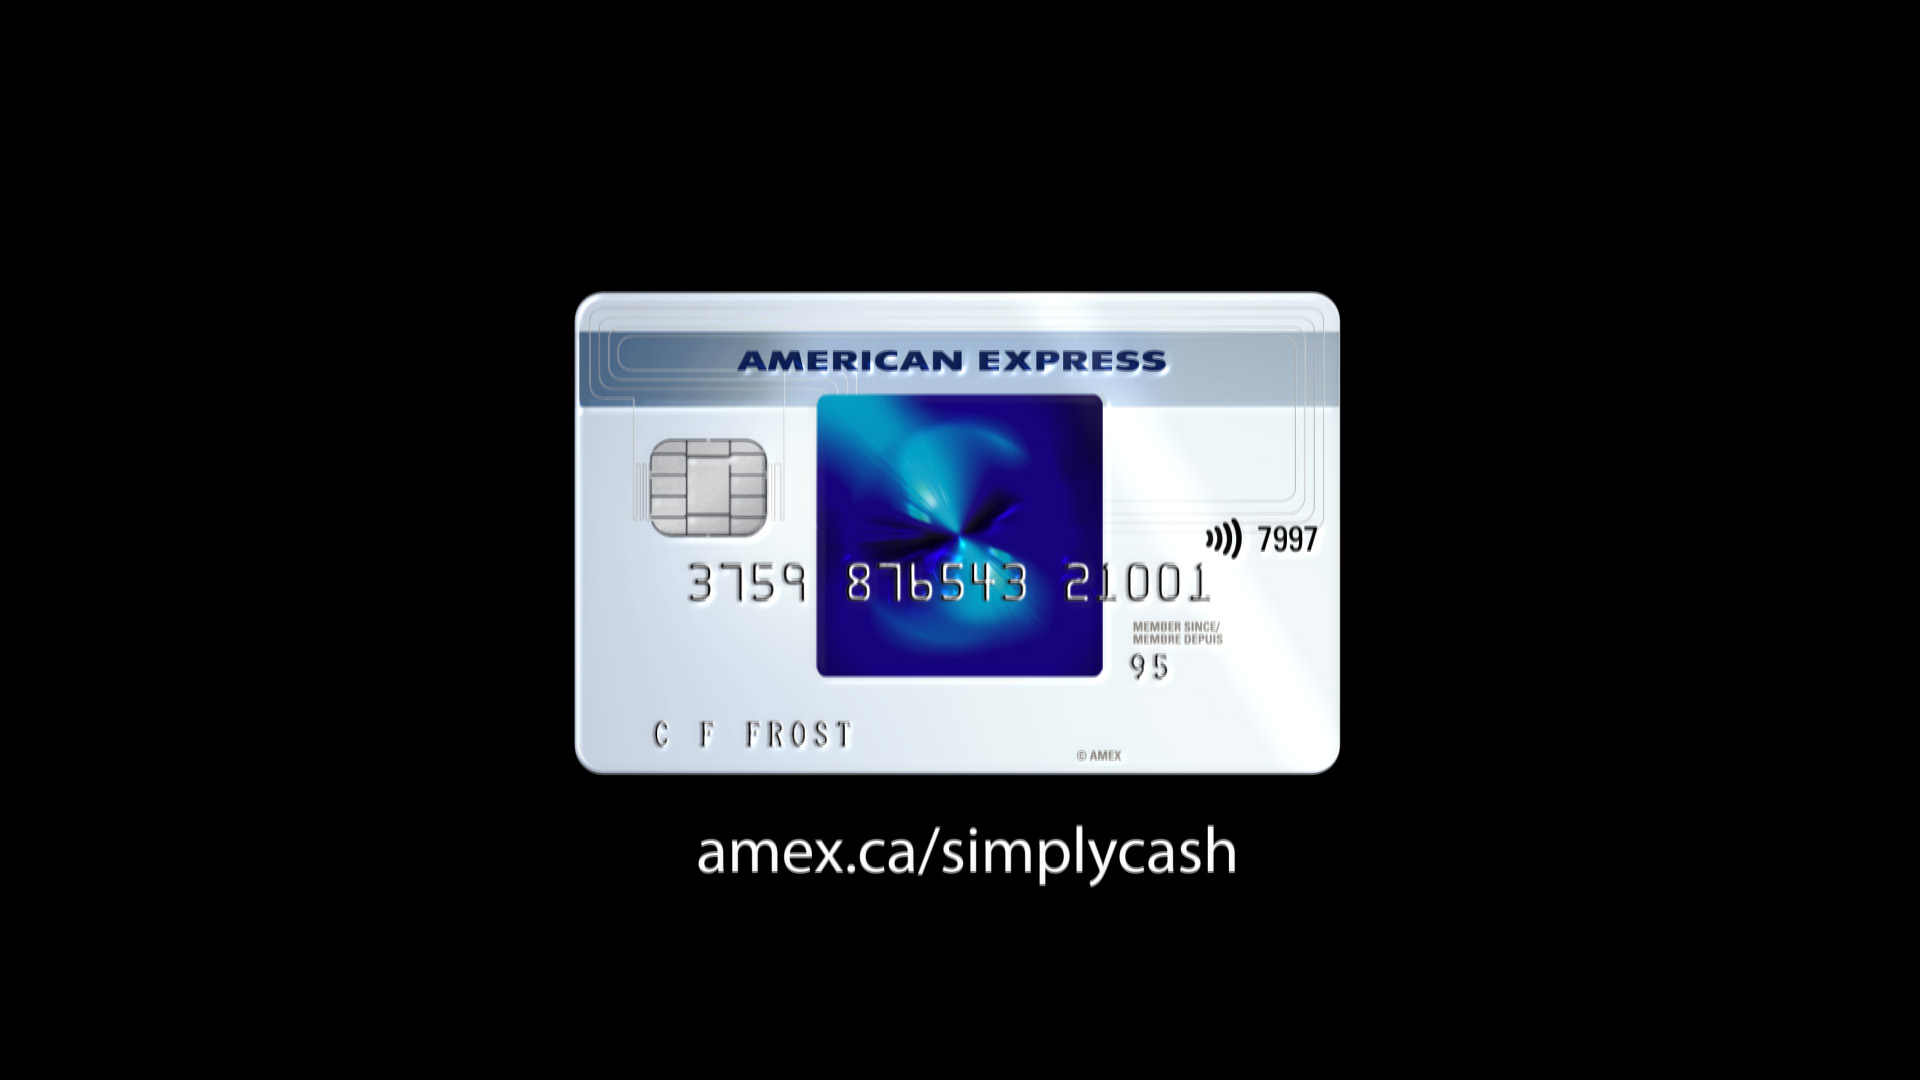 amex_coin_image02